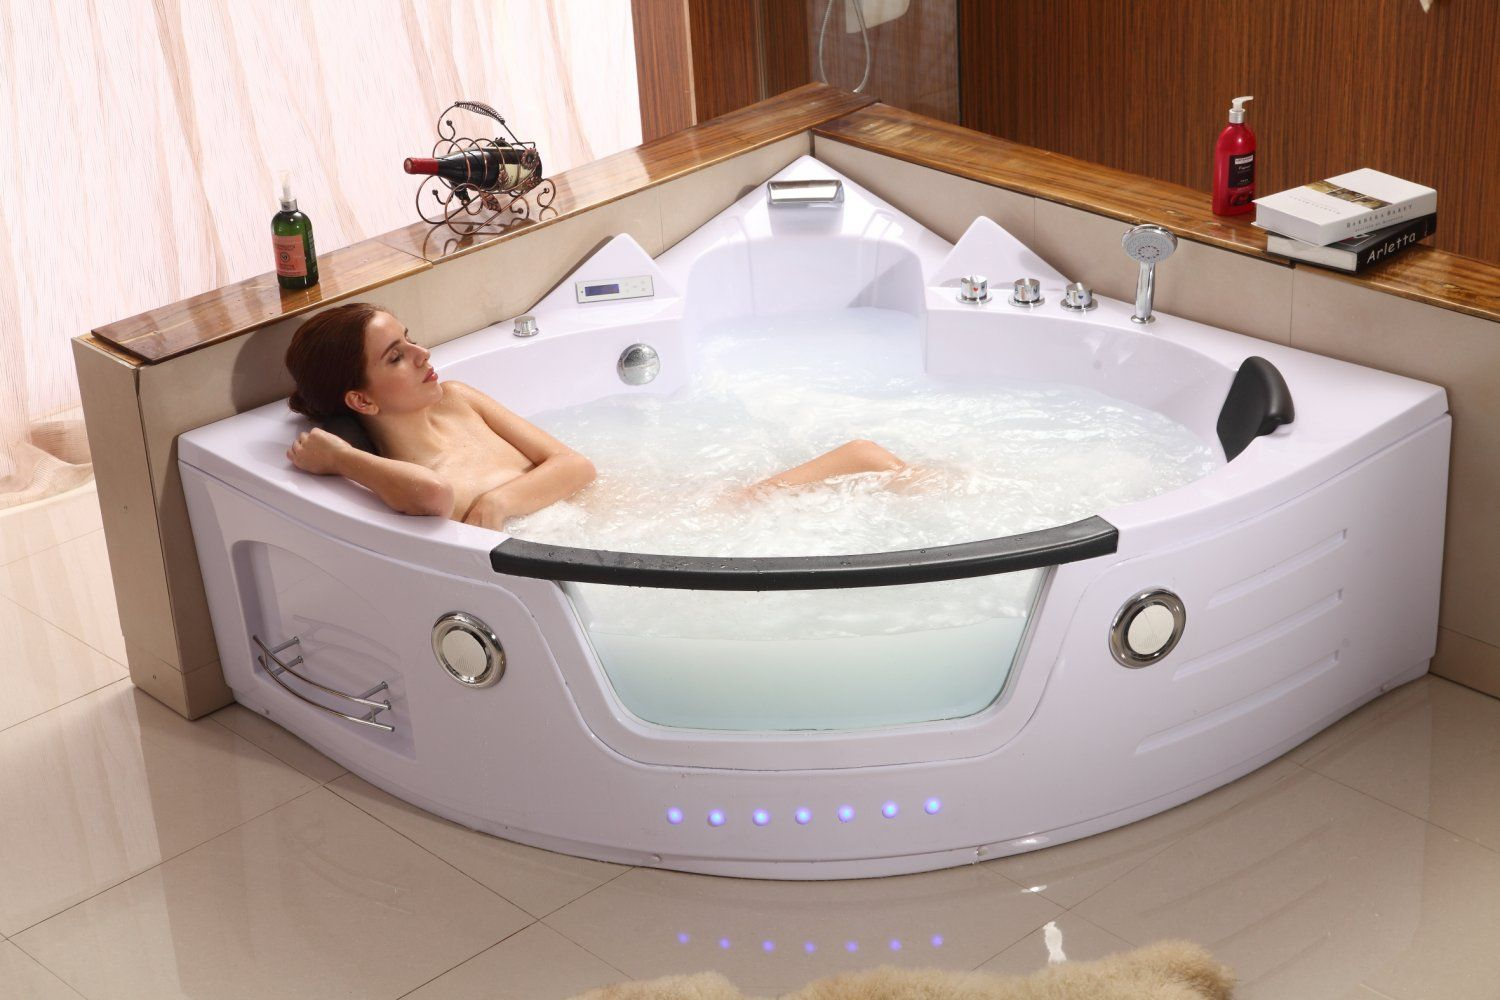 2 Person Hydrotherapy Computerized Massage Indoor Whirlpool Jetted Bathtub Hot Tub 050a White Dream Bathroom Bathtub Jacuzzi Hot Tub Jacuzzi Bathroom